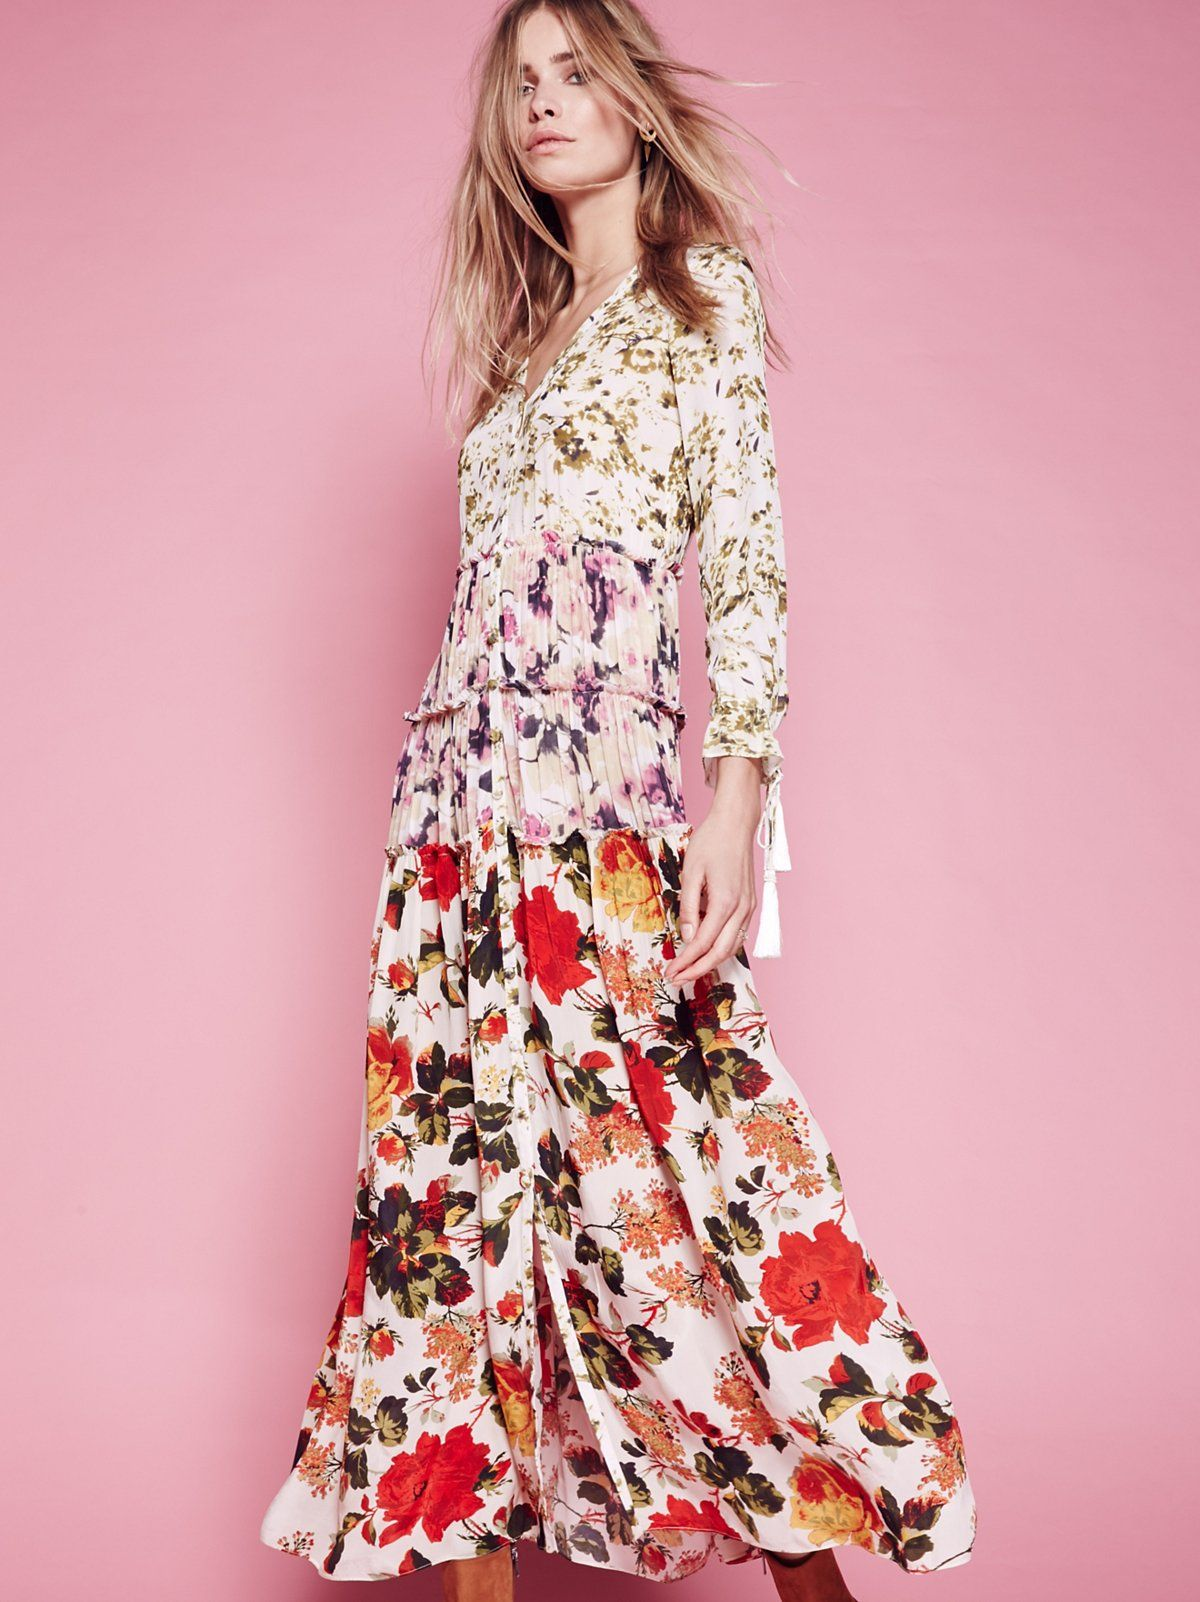 Mixed Floral Maxi Dress | Fashion 9 | Pinterest | Vestido de verano ...